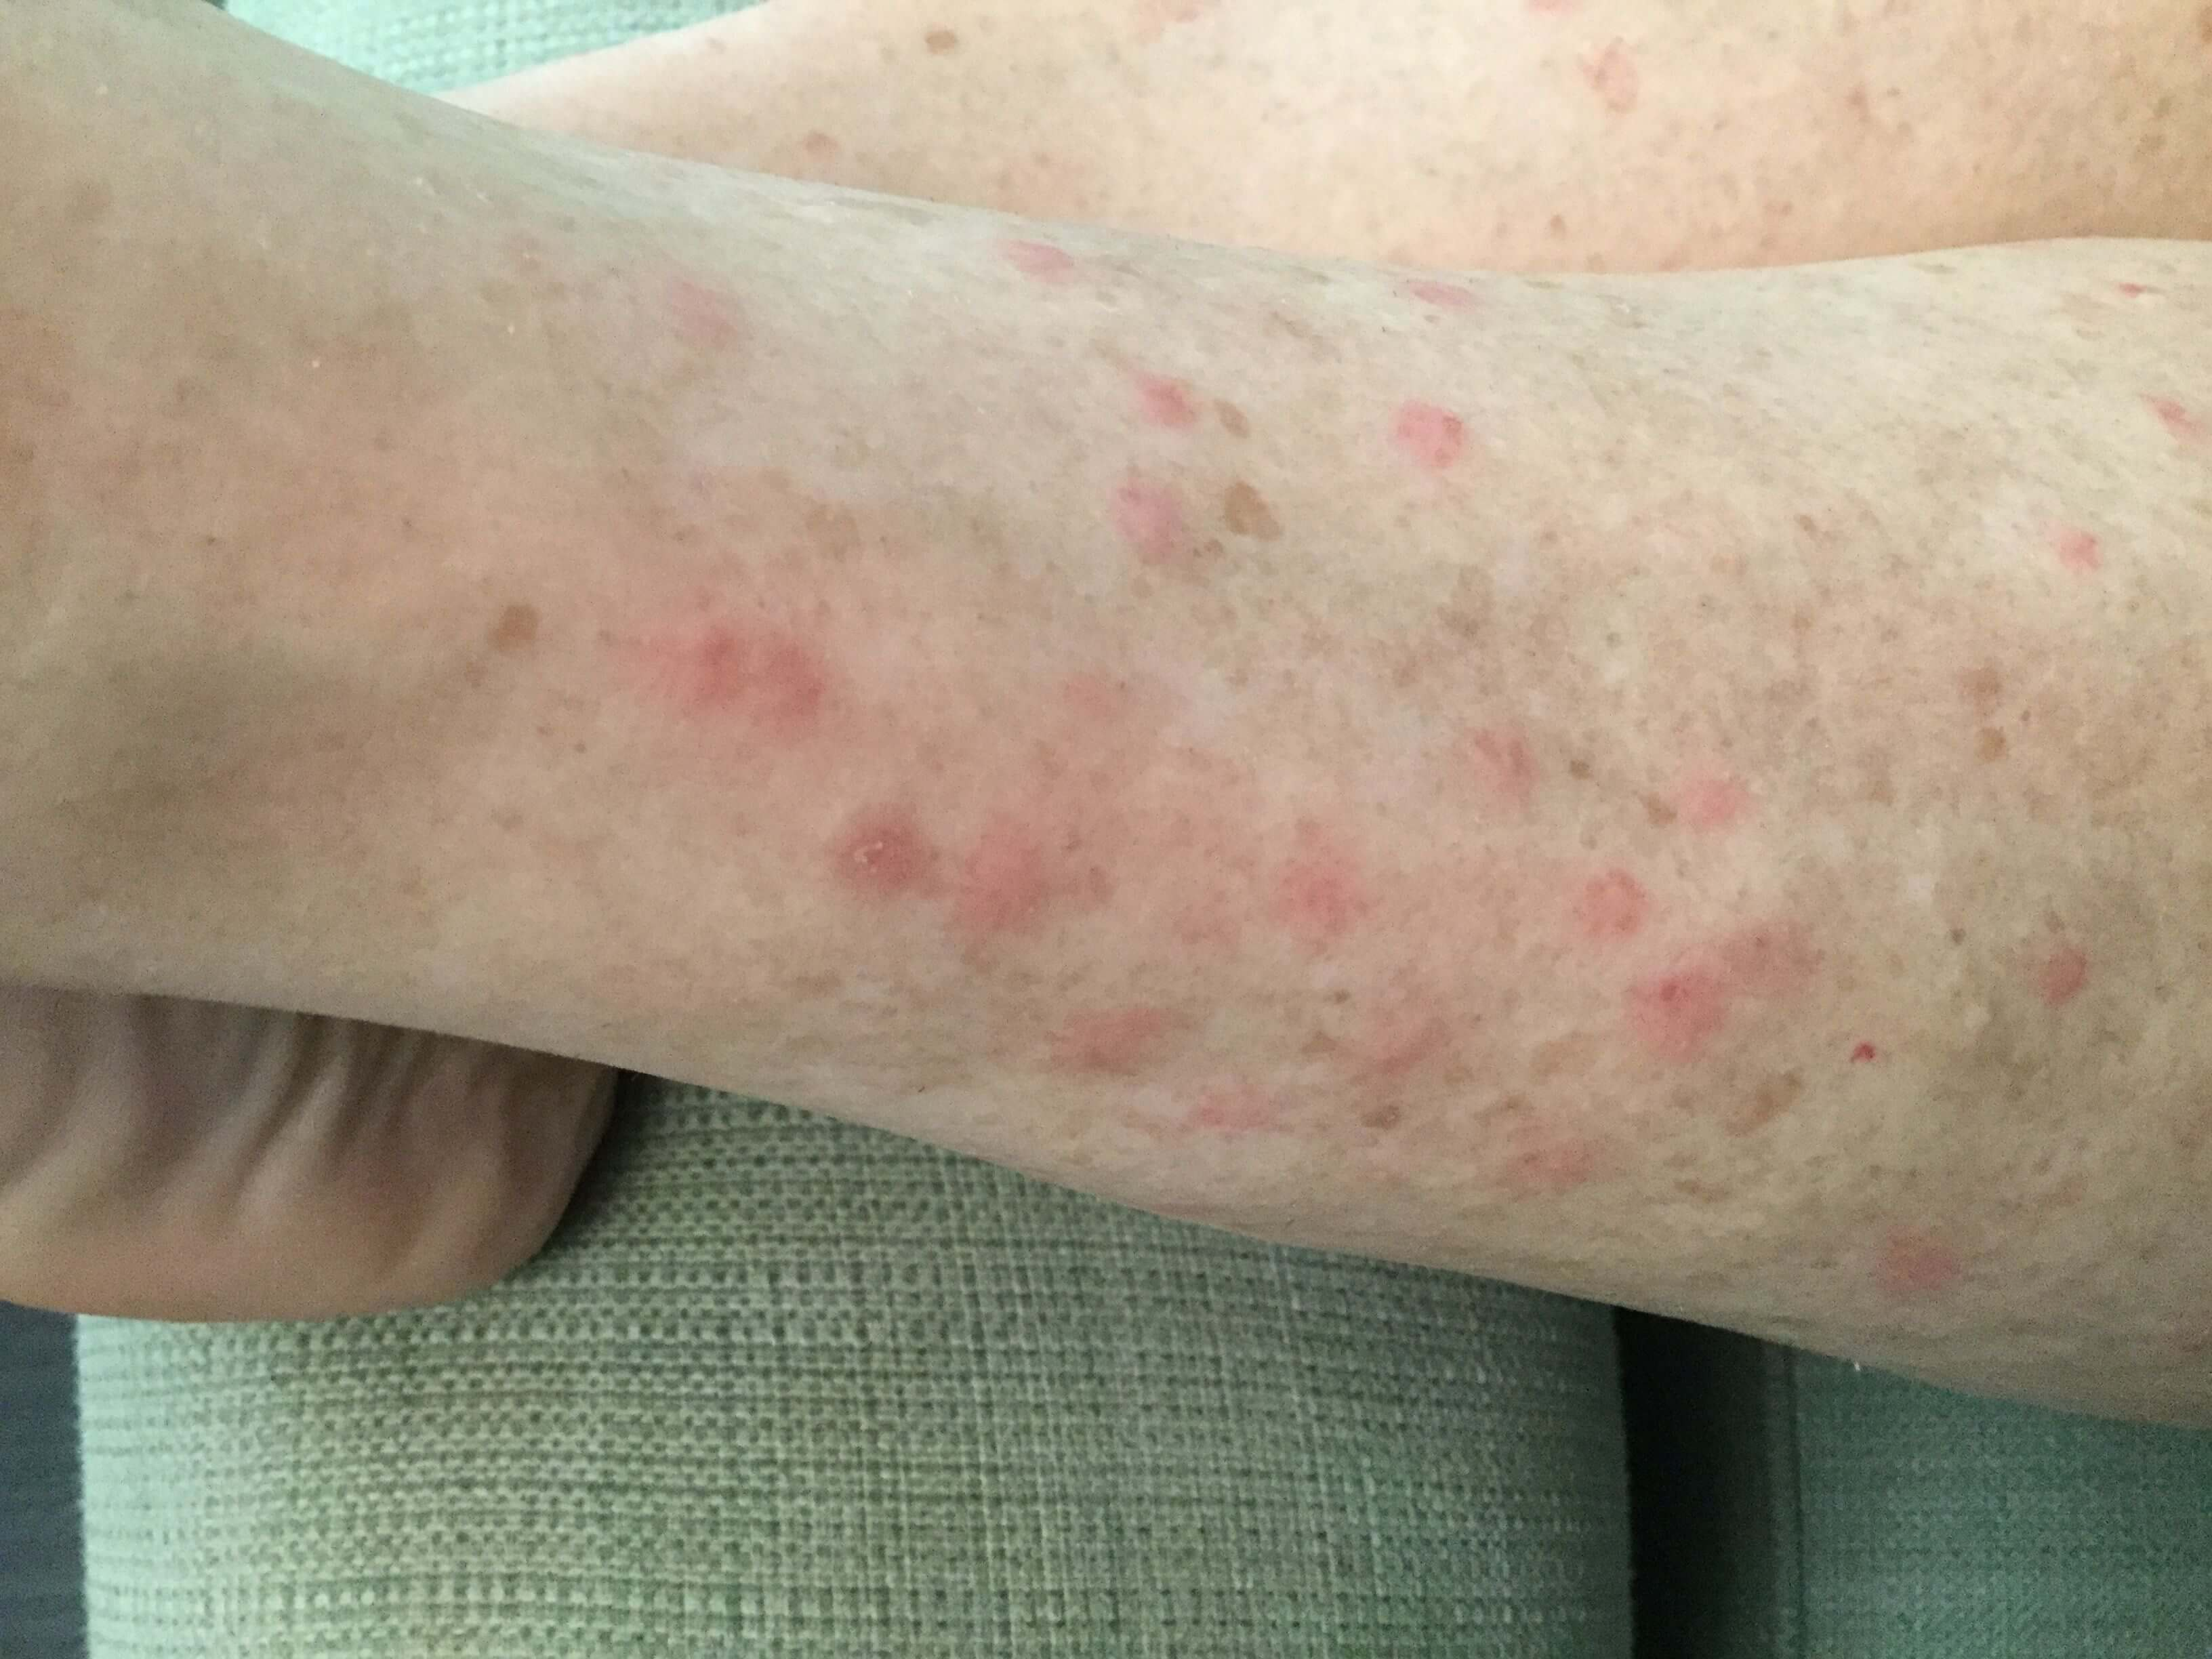 sand flies bites symptoms